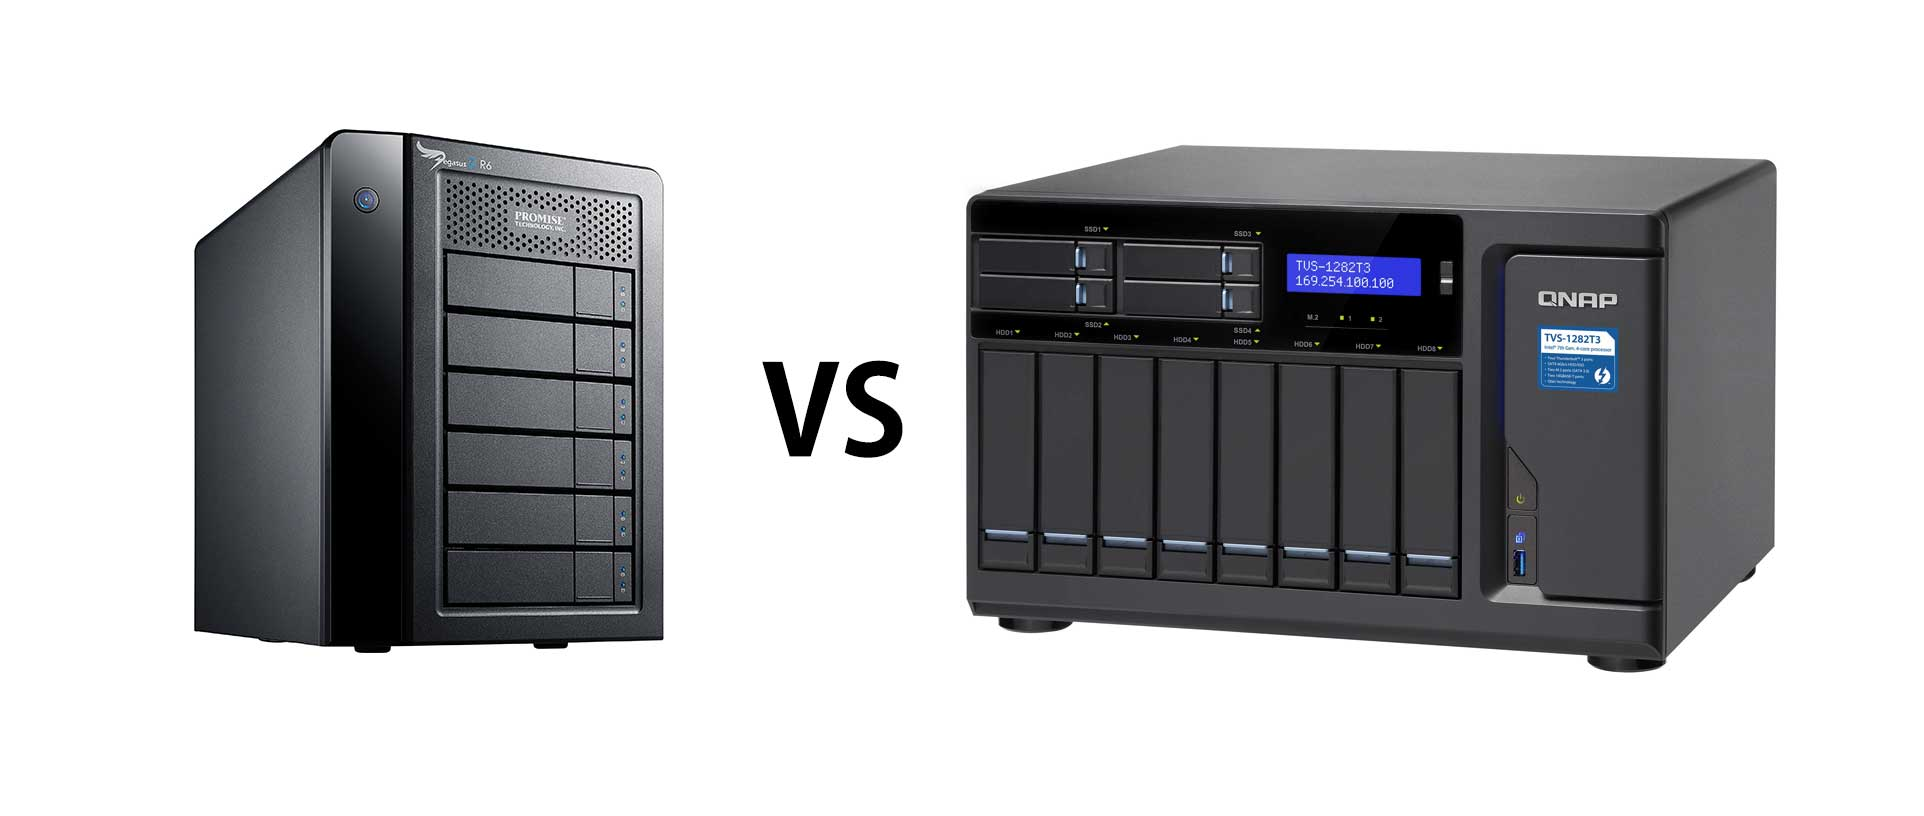 Comparing a Classis Raid Promise Pegasus R6 versus a more modern approach NAS QNAP 1282-T3 for a Media Business